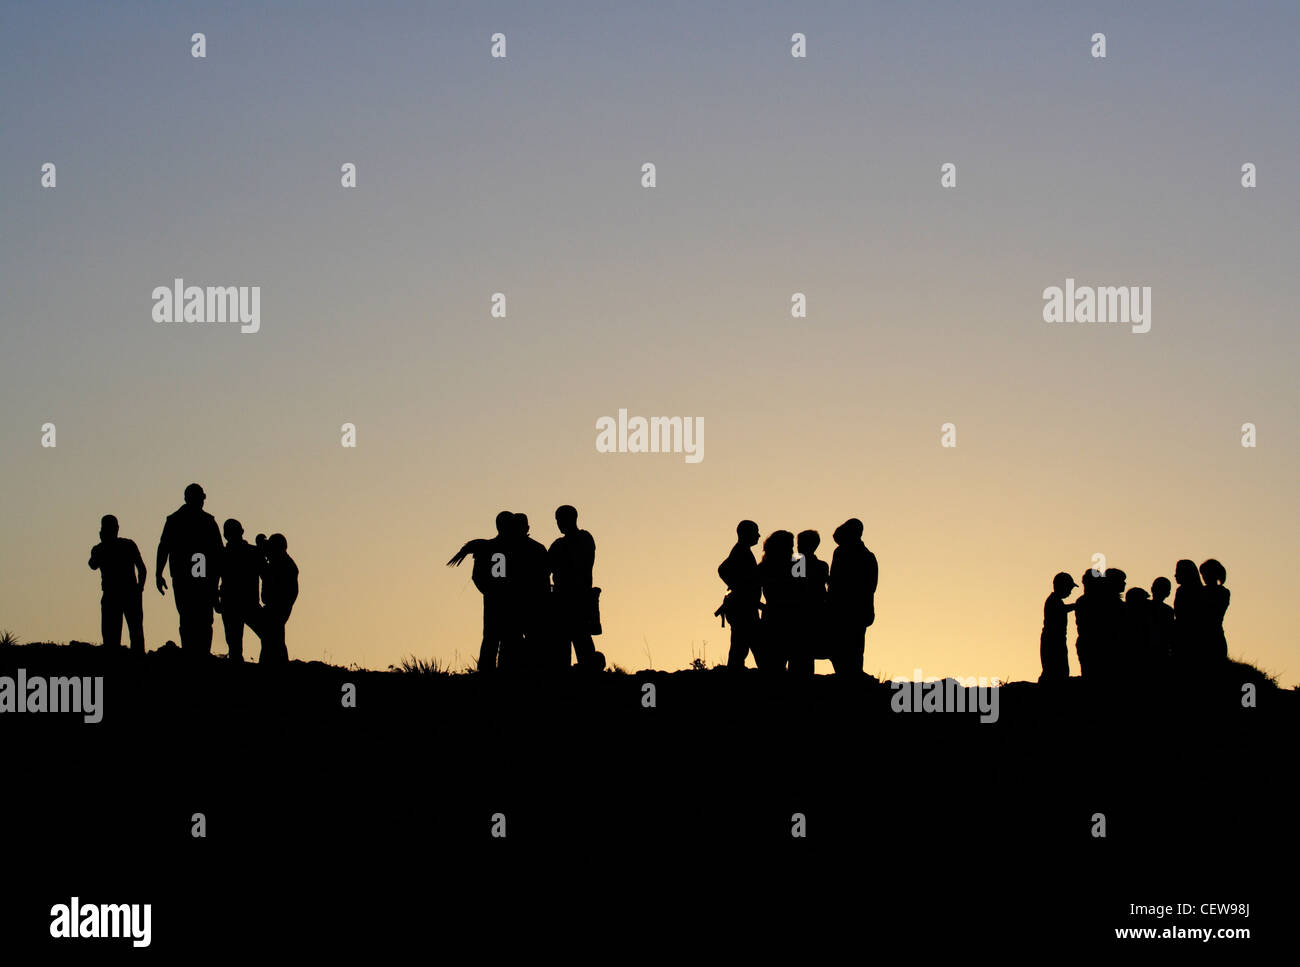 groups-of-people-in-silhouette-at-dusk-c